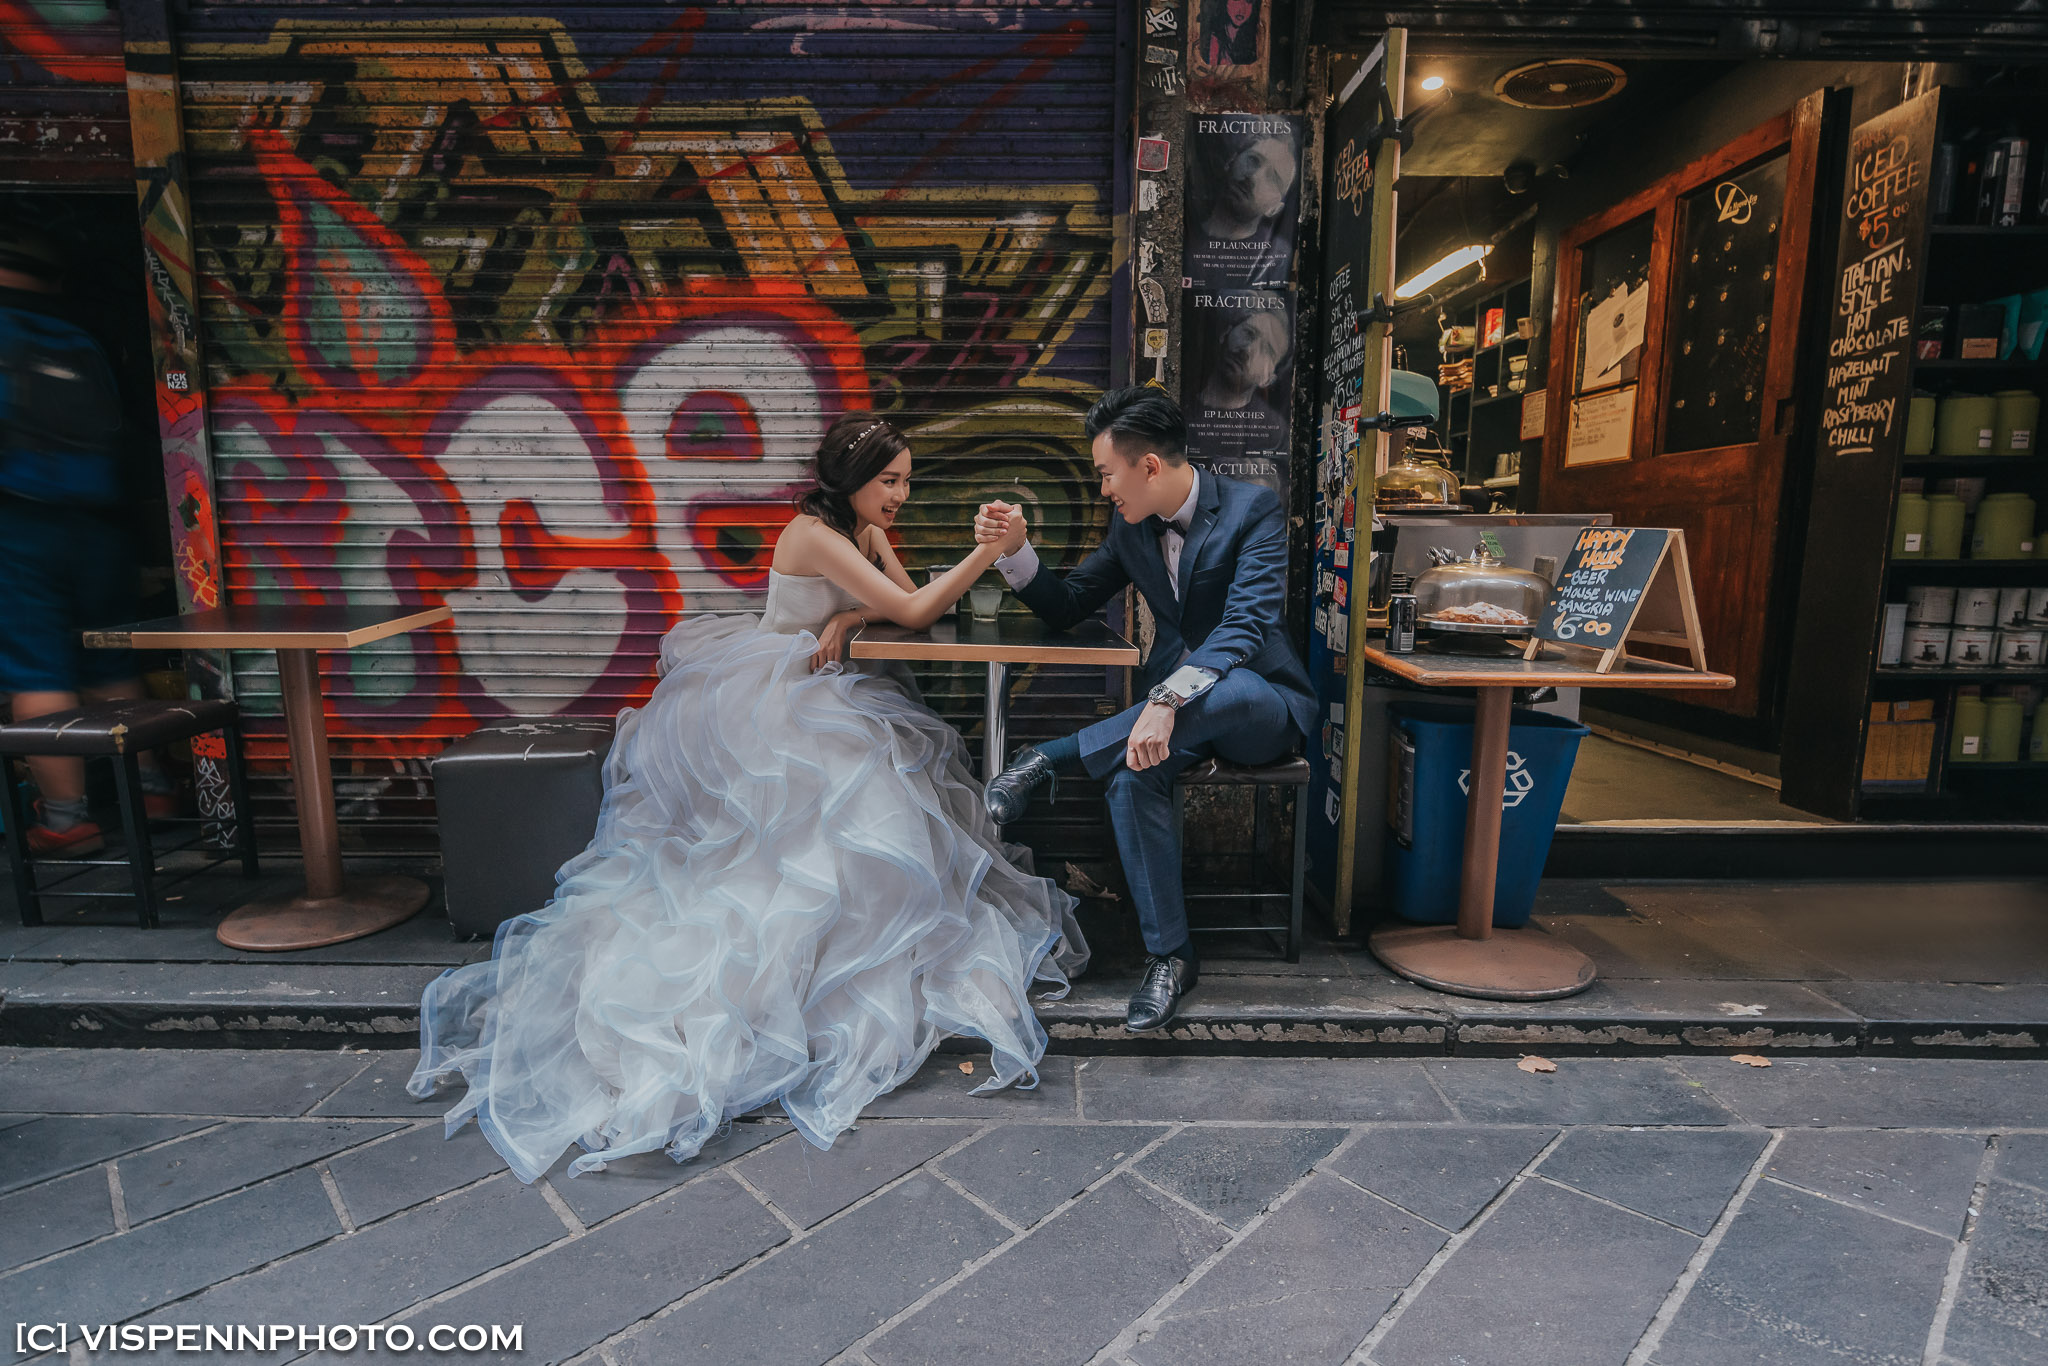 PRE WEDDING Photography Melbourne AndyCHEN 5787 A7R2 ZHPENN